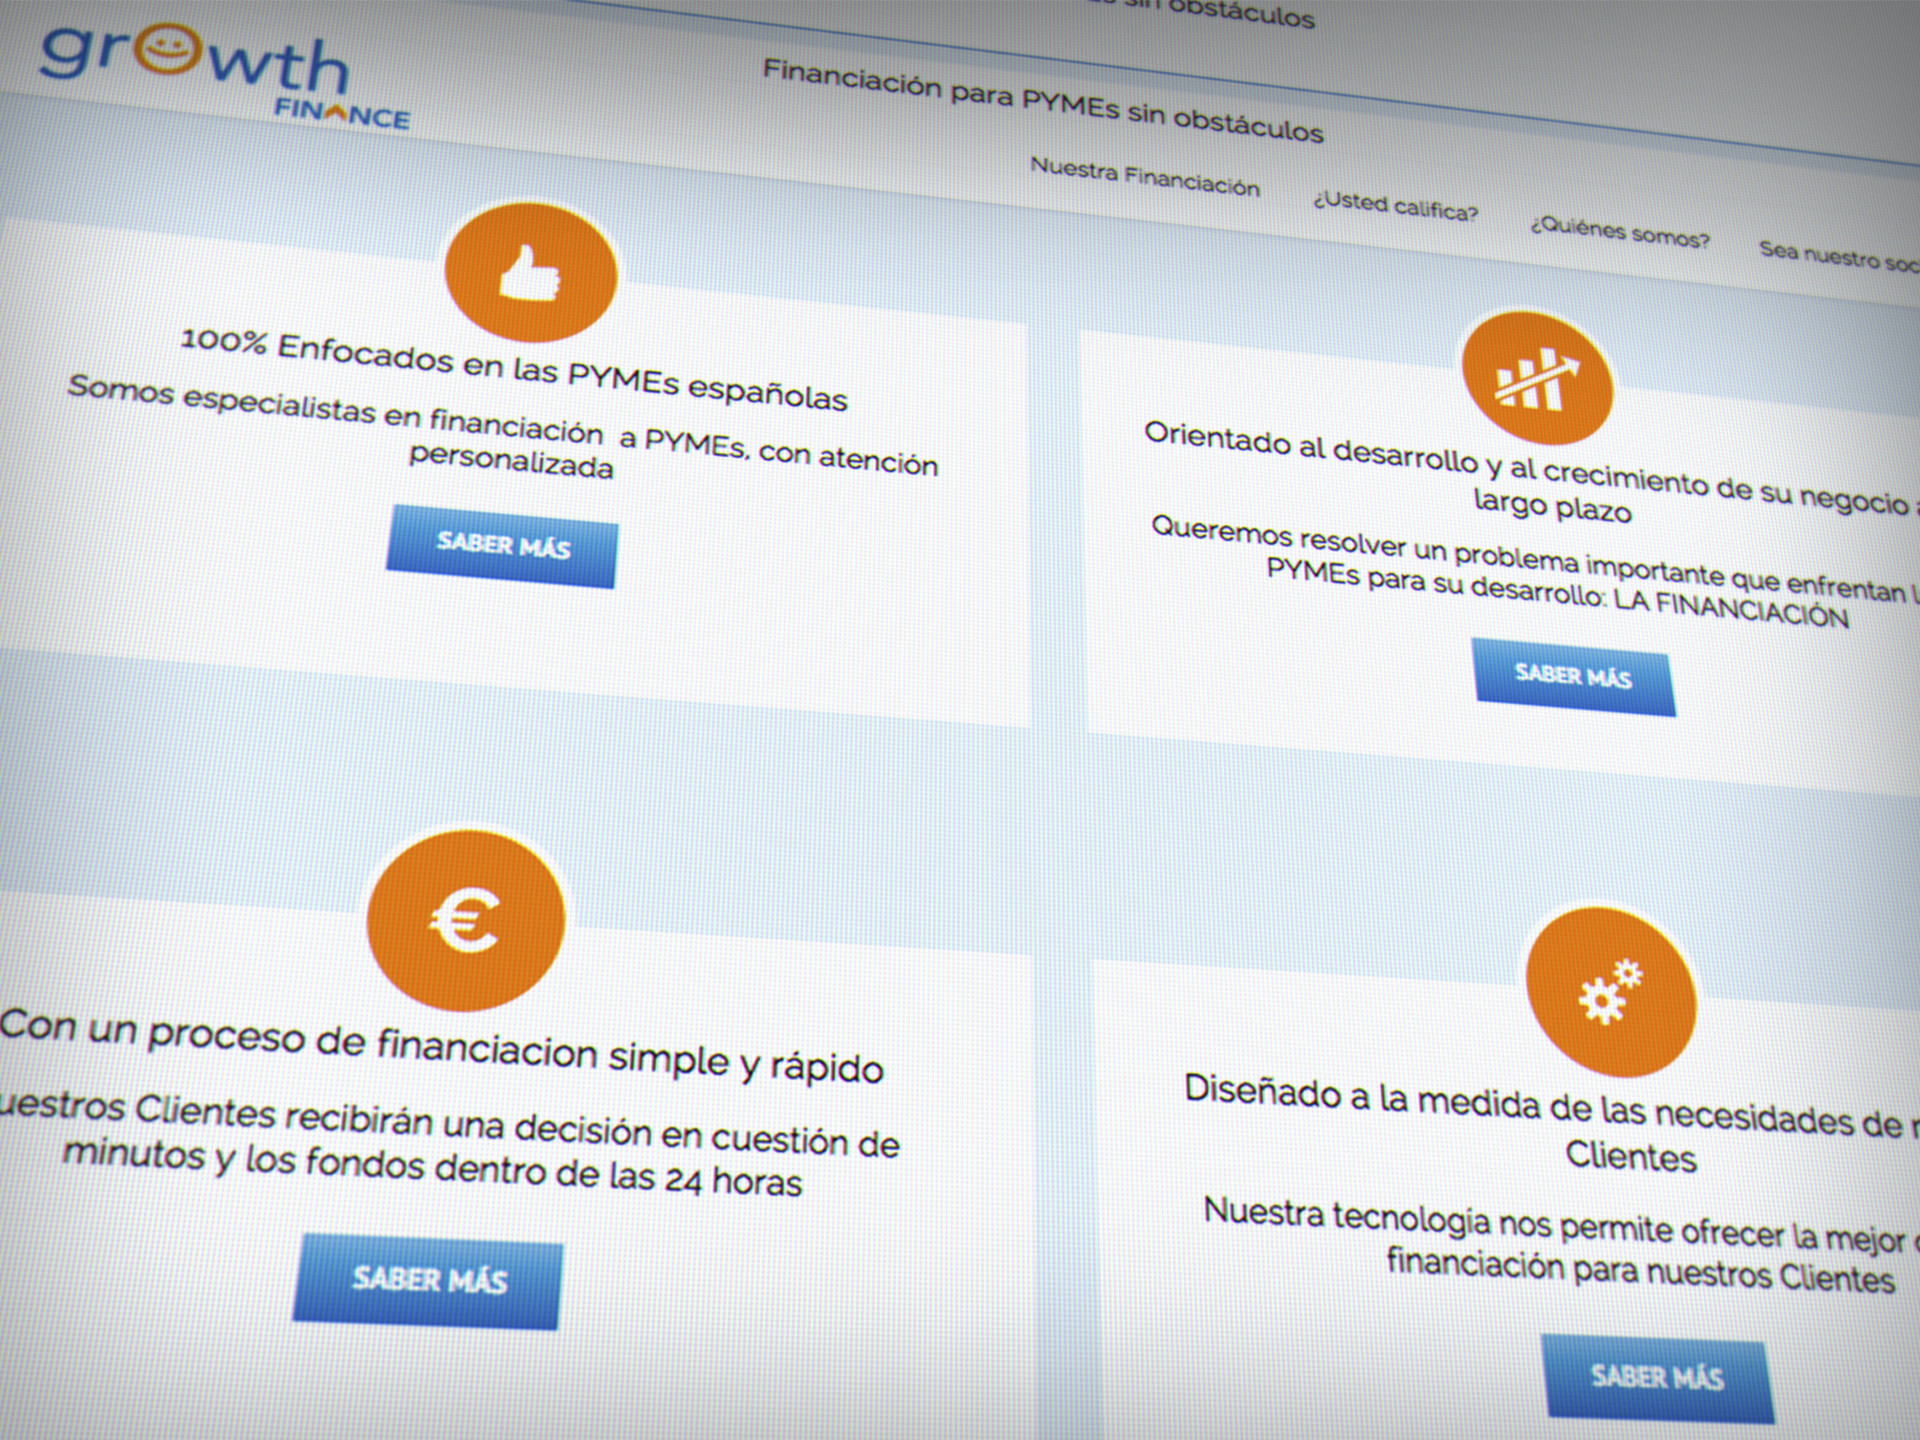 diseño web larioja growth finance